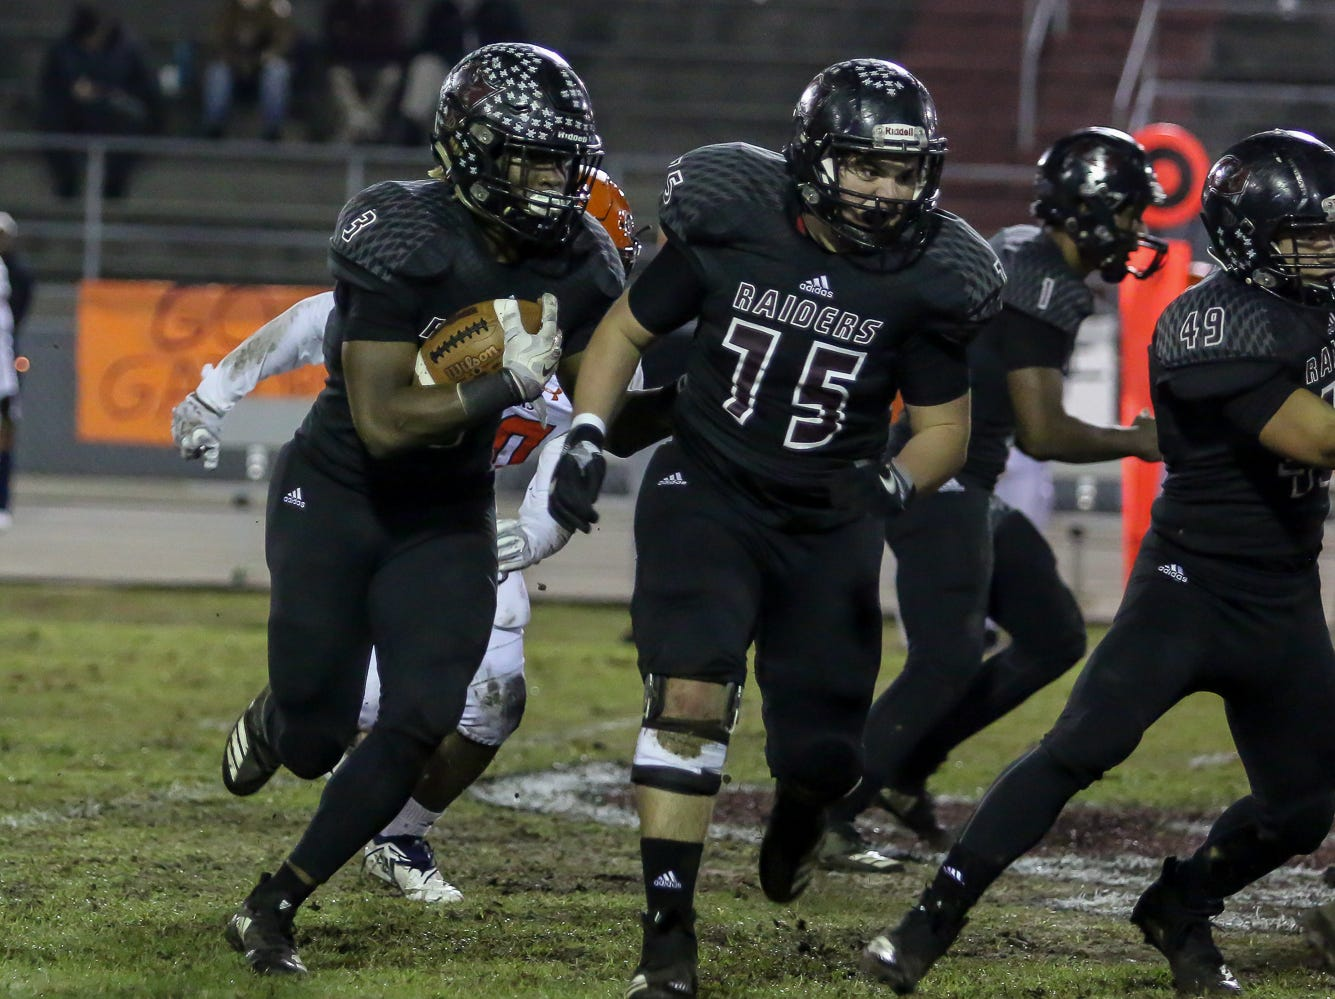 Navarre's Christopher Williams (3) runs the ball against Escambia in the Region 1-6A Semifinal game at Navarre High School on Friday, November 16, 2018.